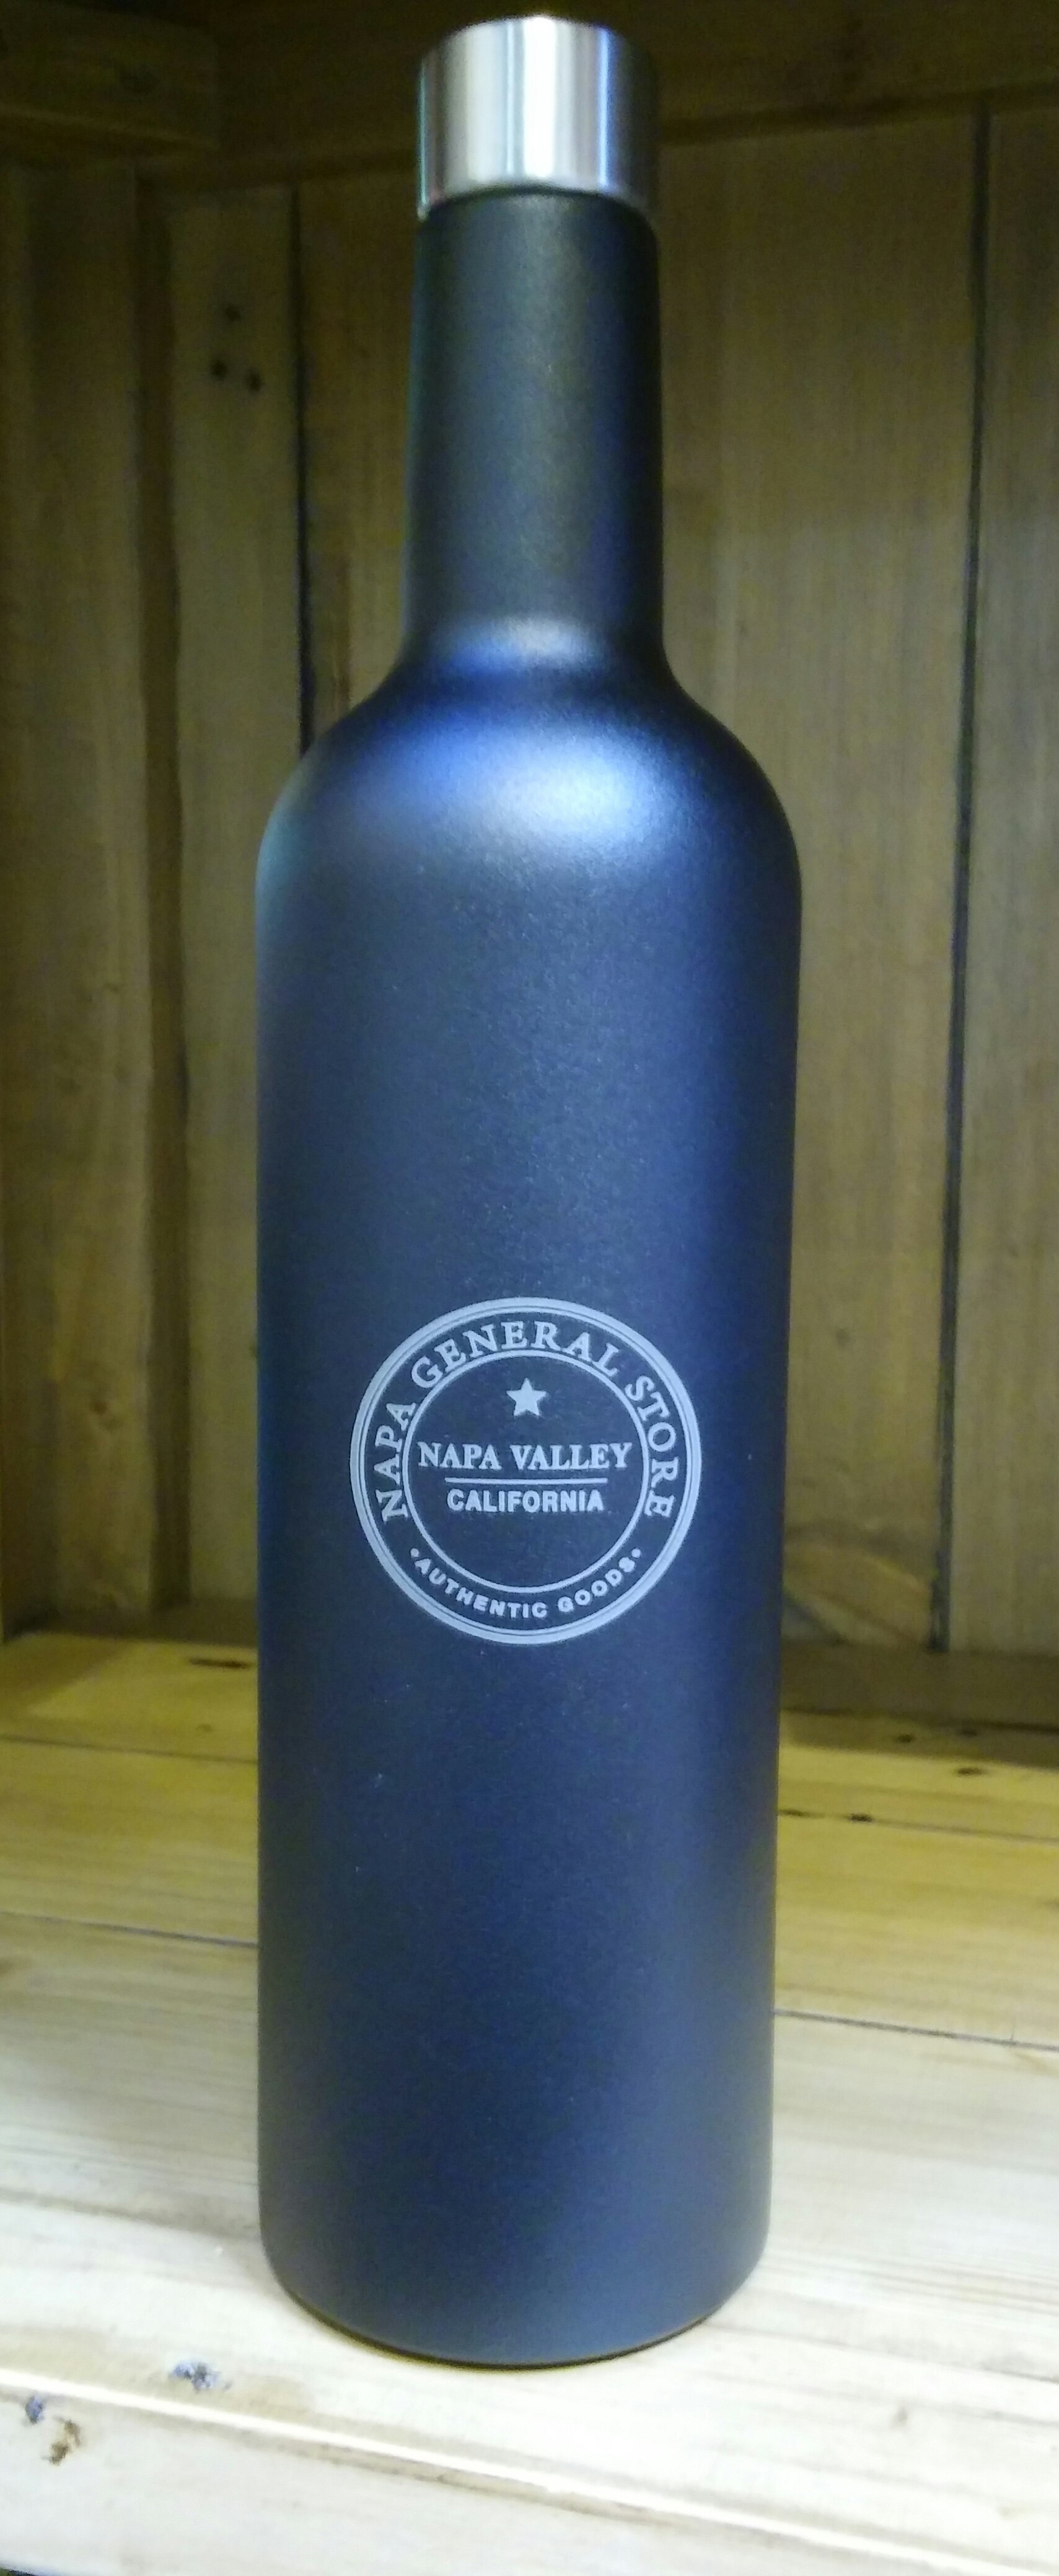 Stainless Steel Napa Valley Wine Bottle Free Shipping